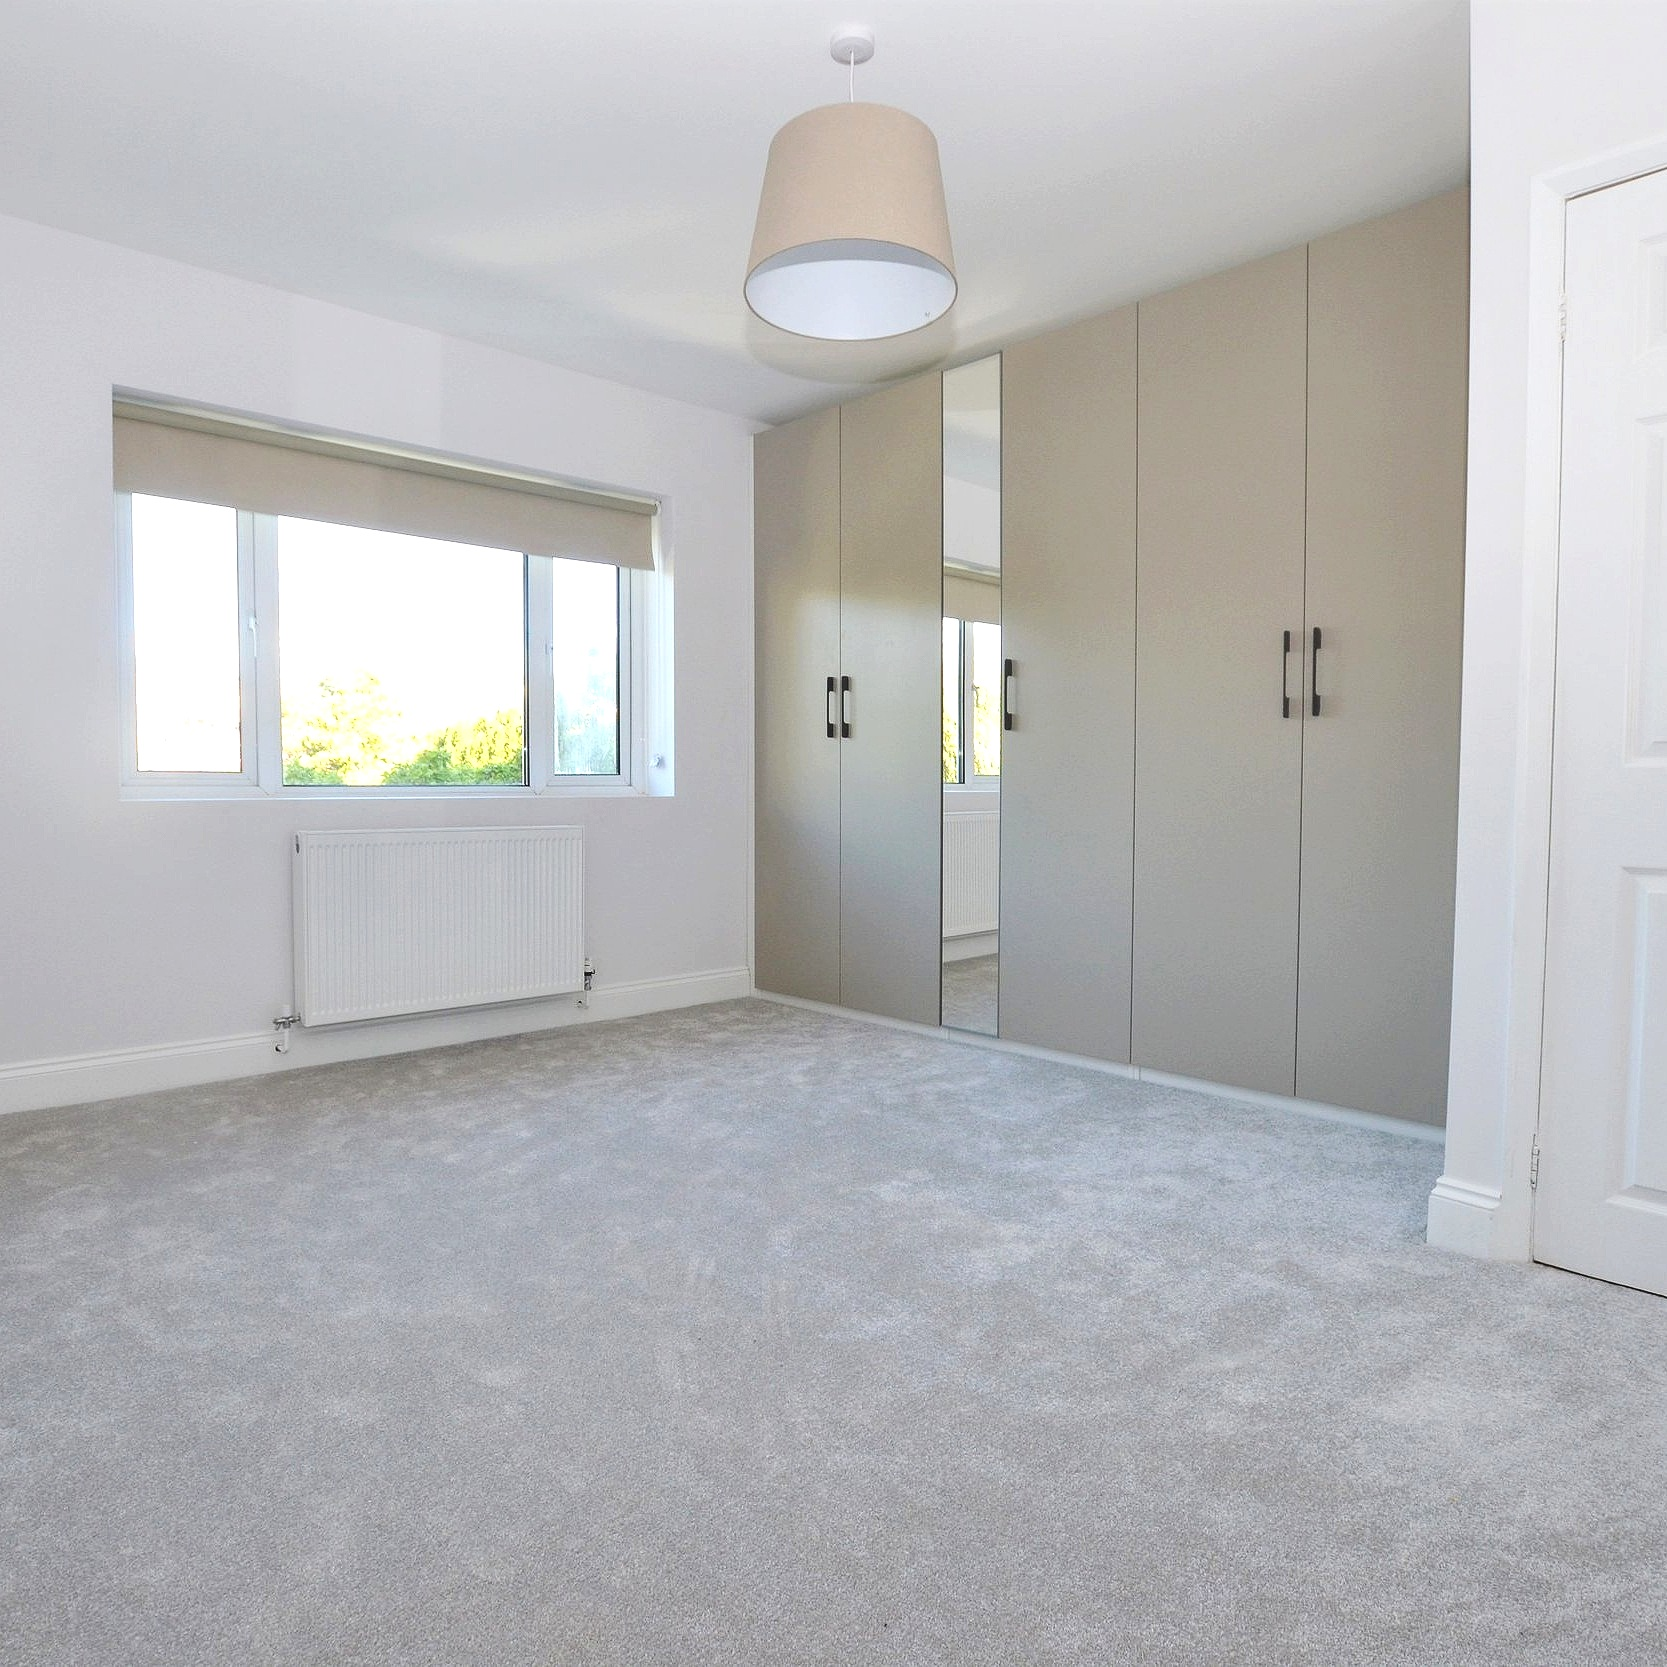 BH1 Investment property - 2019